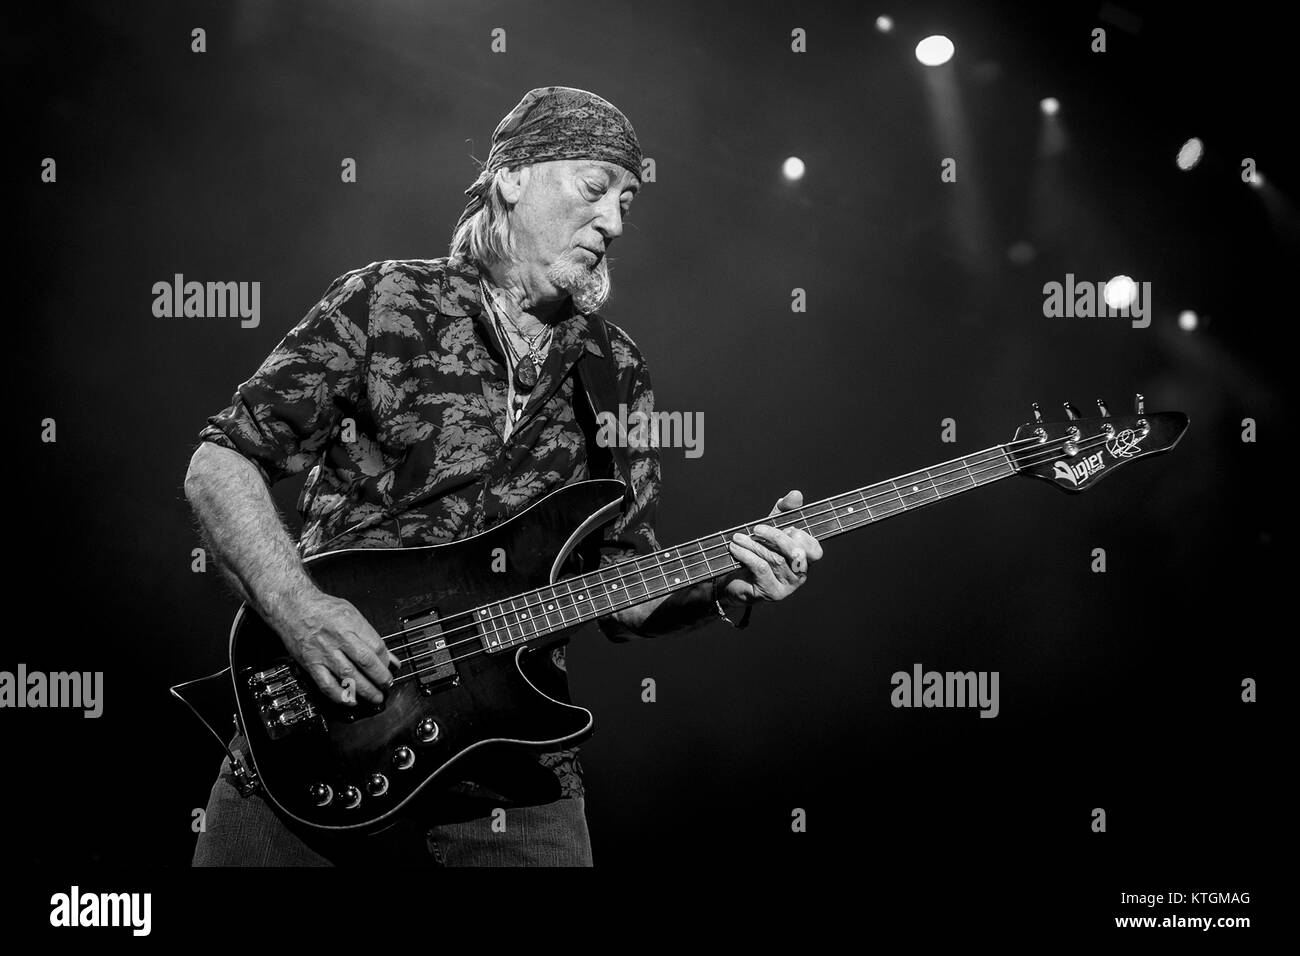 Deep Purple perform at the O2 Arena  Featuring: Roger Glover Where: London, United Kingdom When: 23 Nov 2017 Credit: Stock Photo